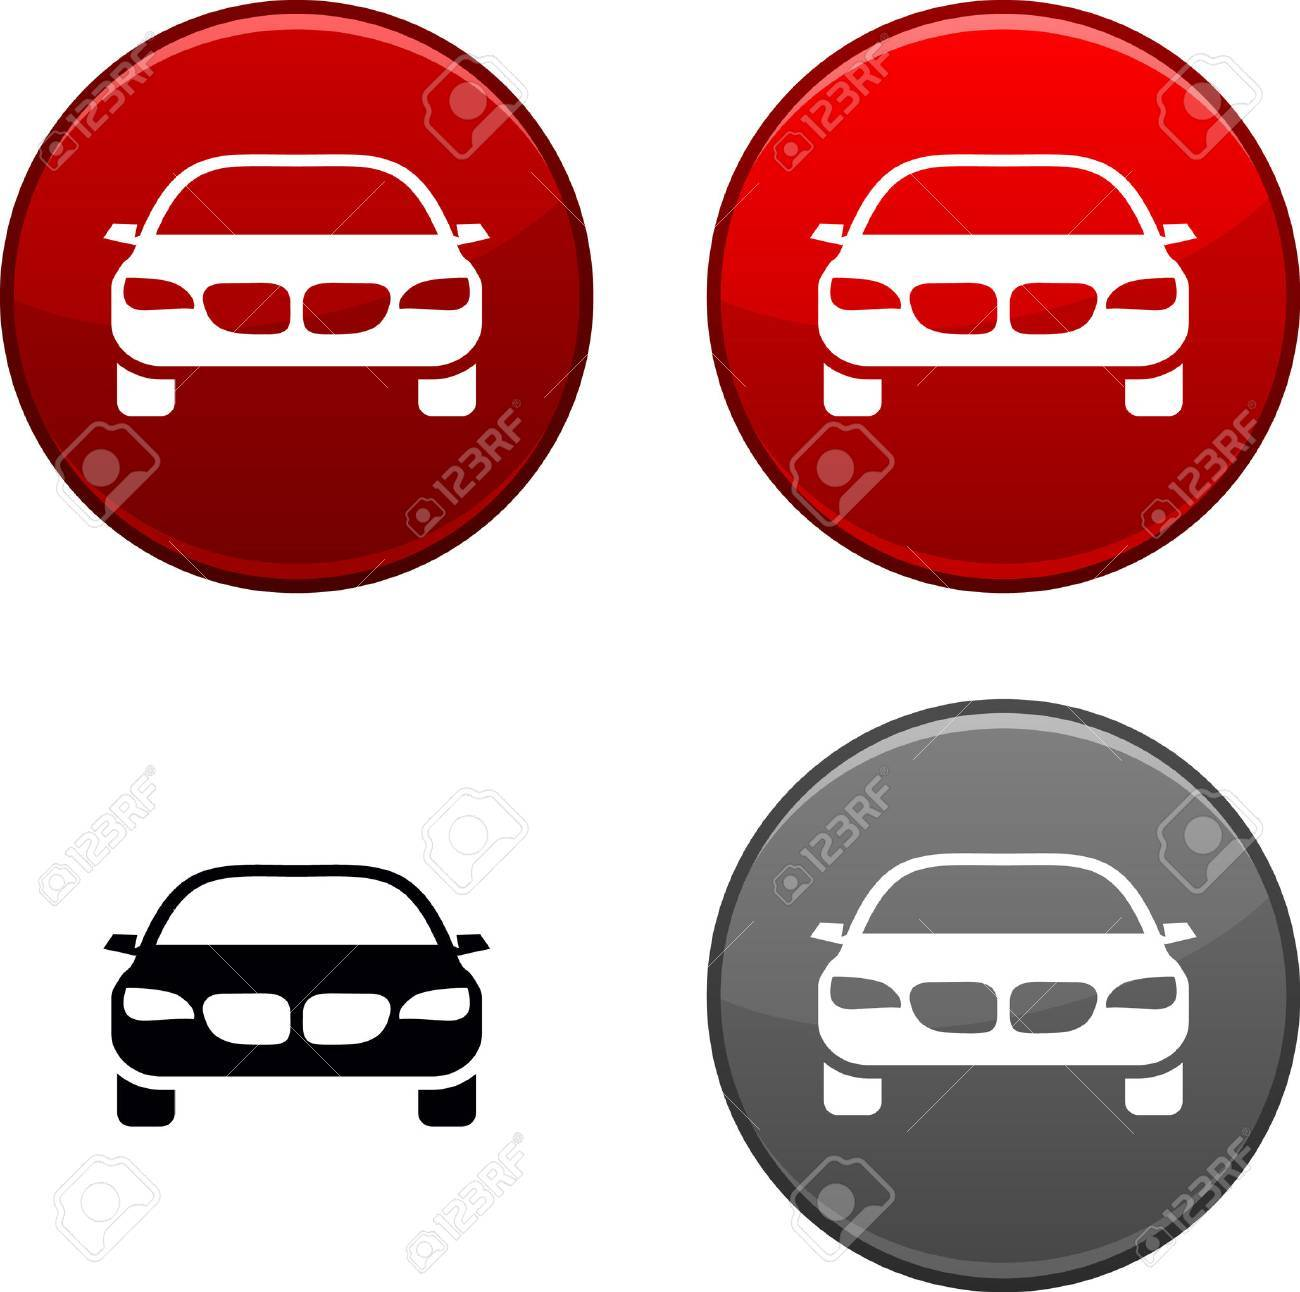 Car round buttons. Black icon included. Stock Vector - 6740532